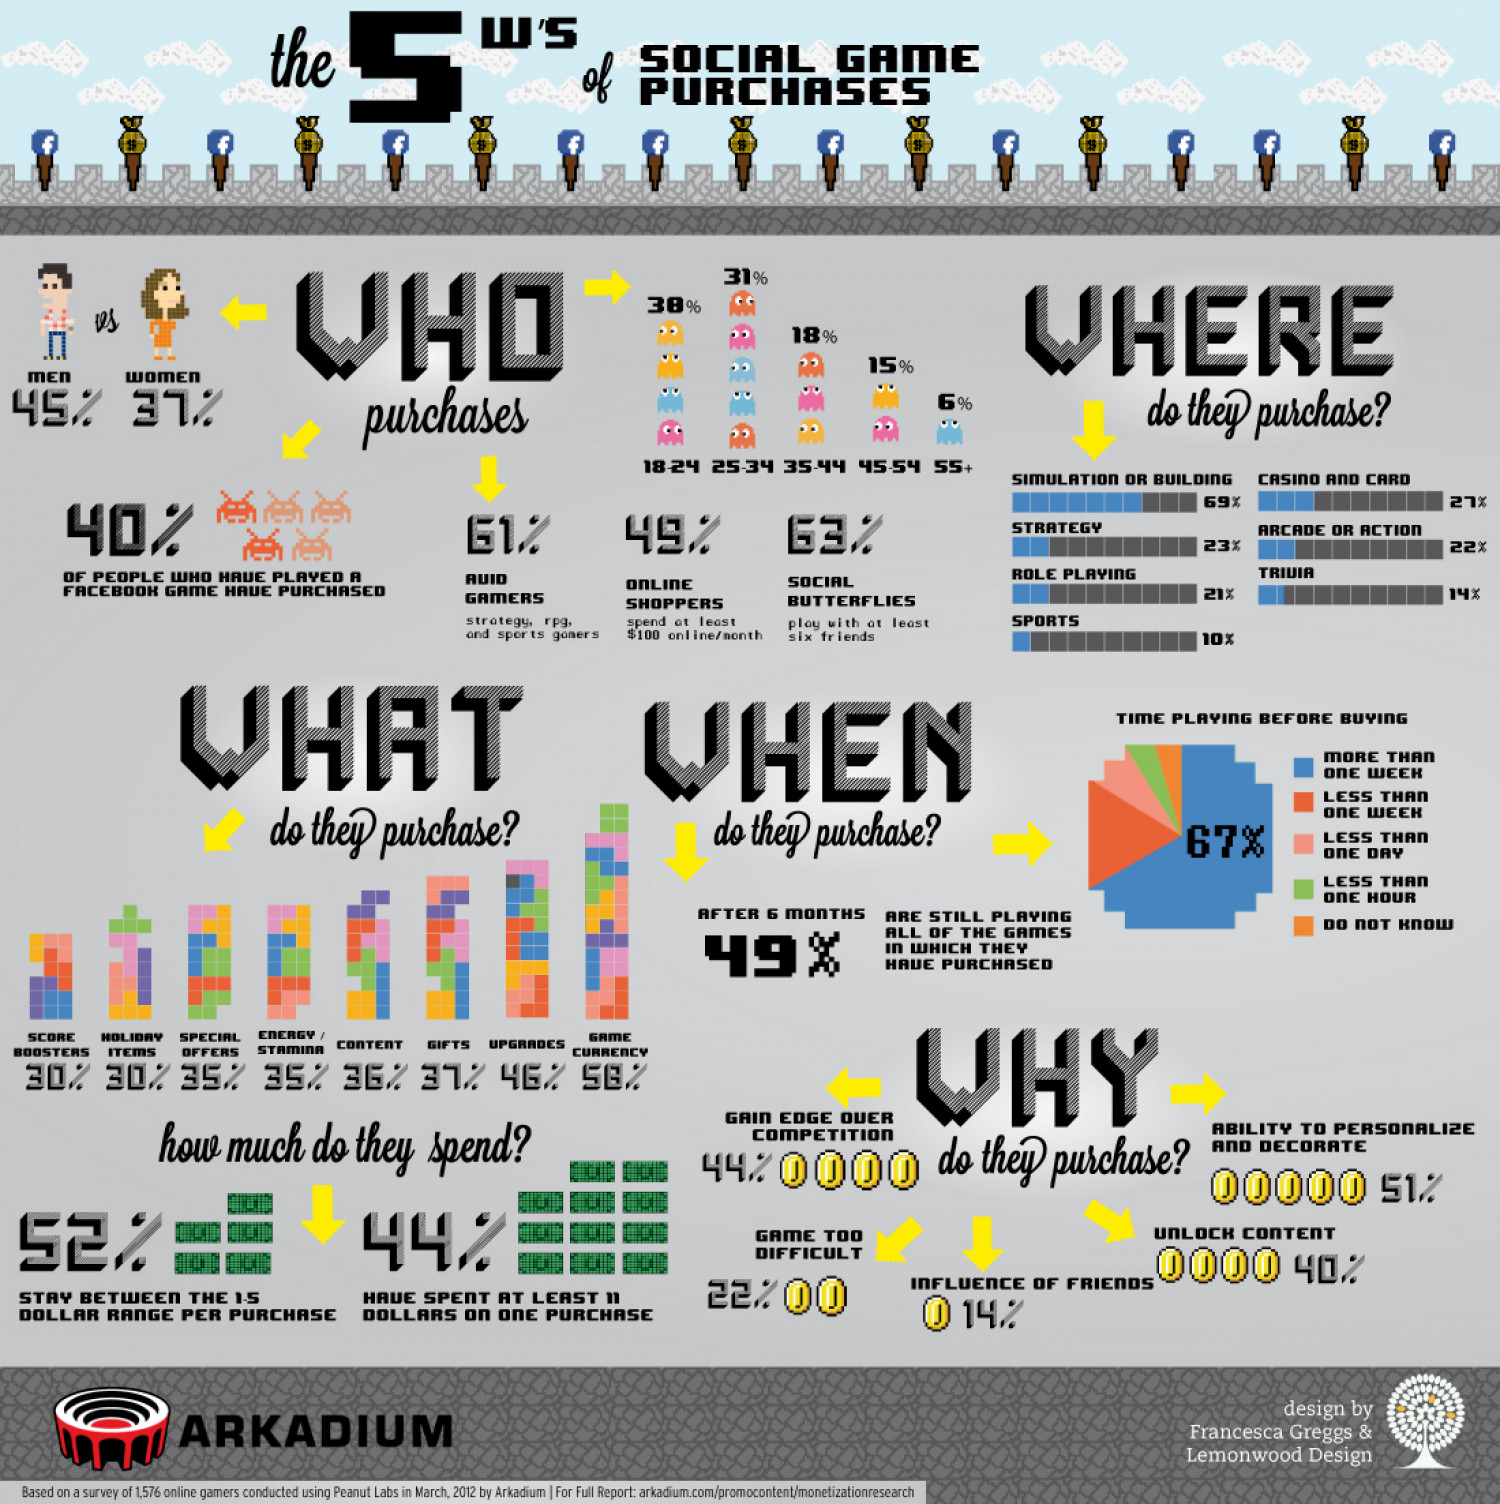 The 5 W's of Social Game Purchases Infographic